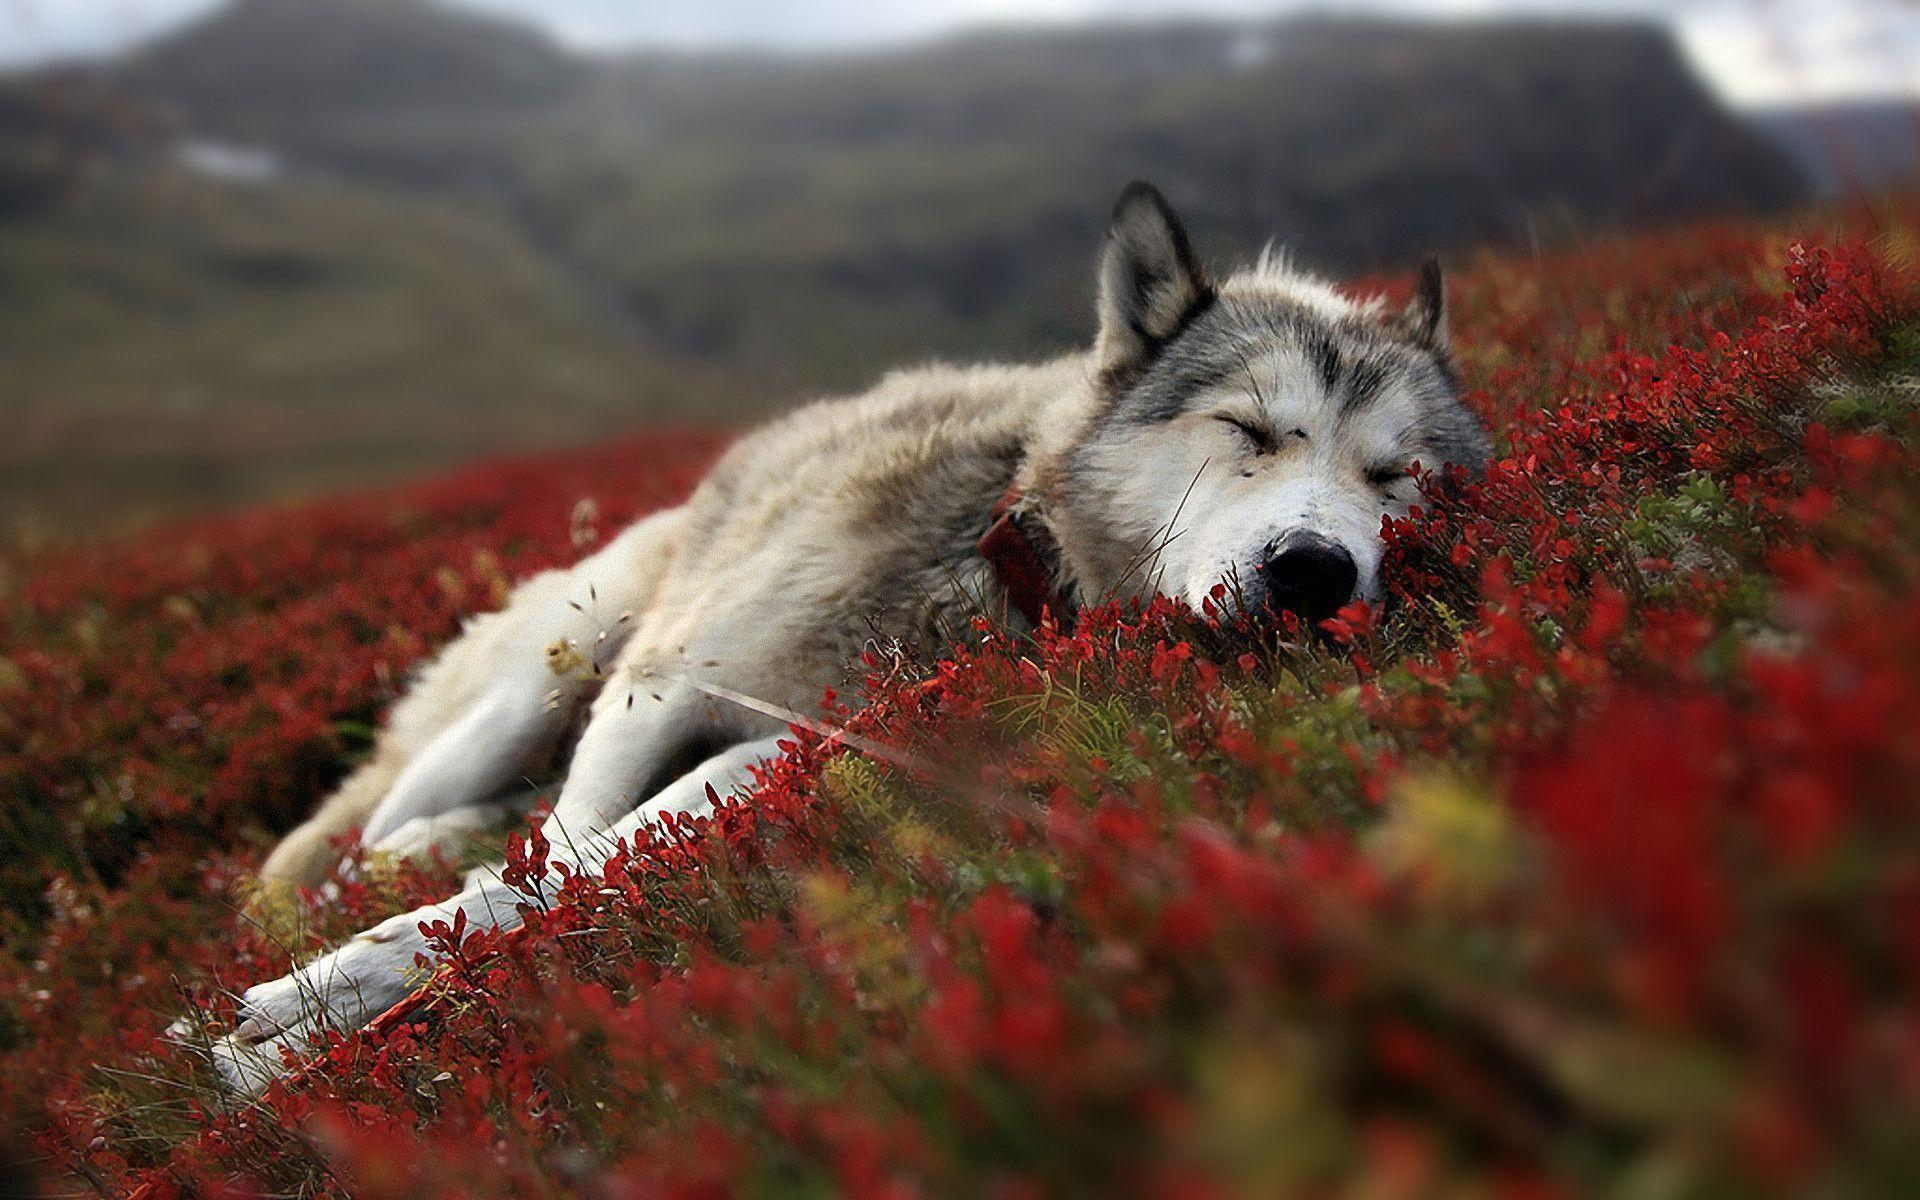 Hd wallpaper wolf - Hd Wallpapers Wolf Hd Wallpapers Inn